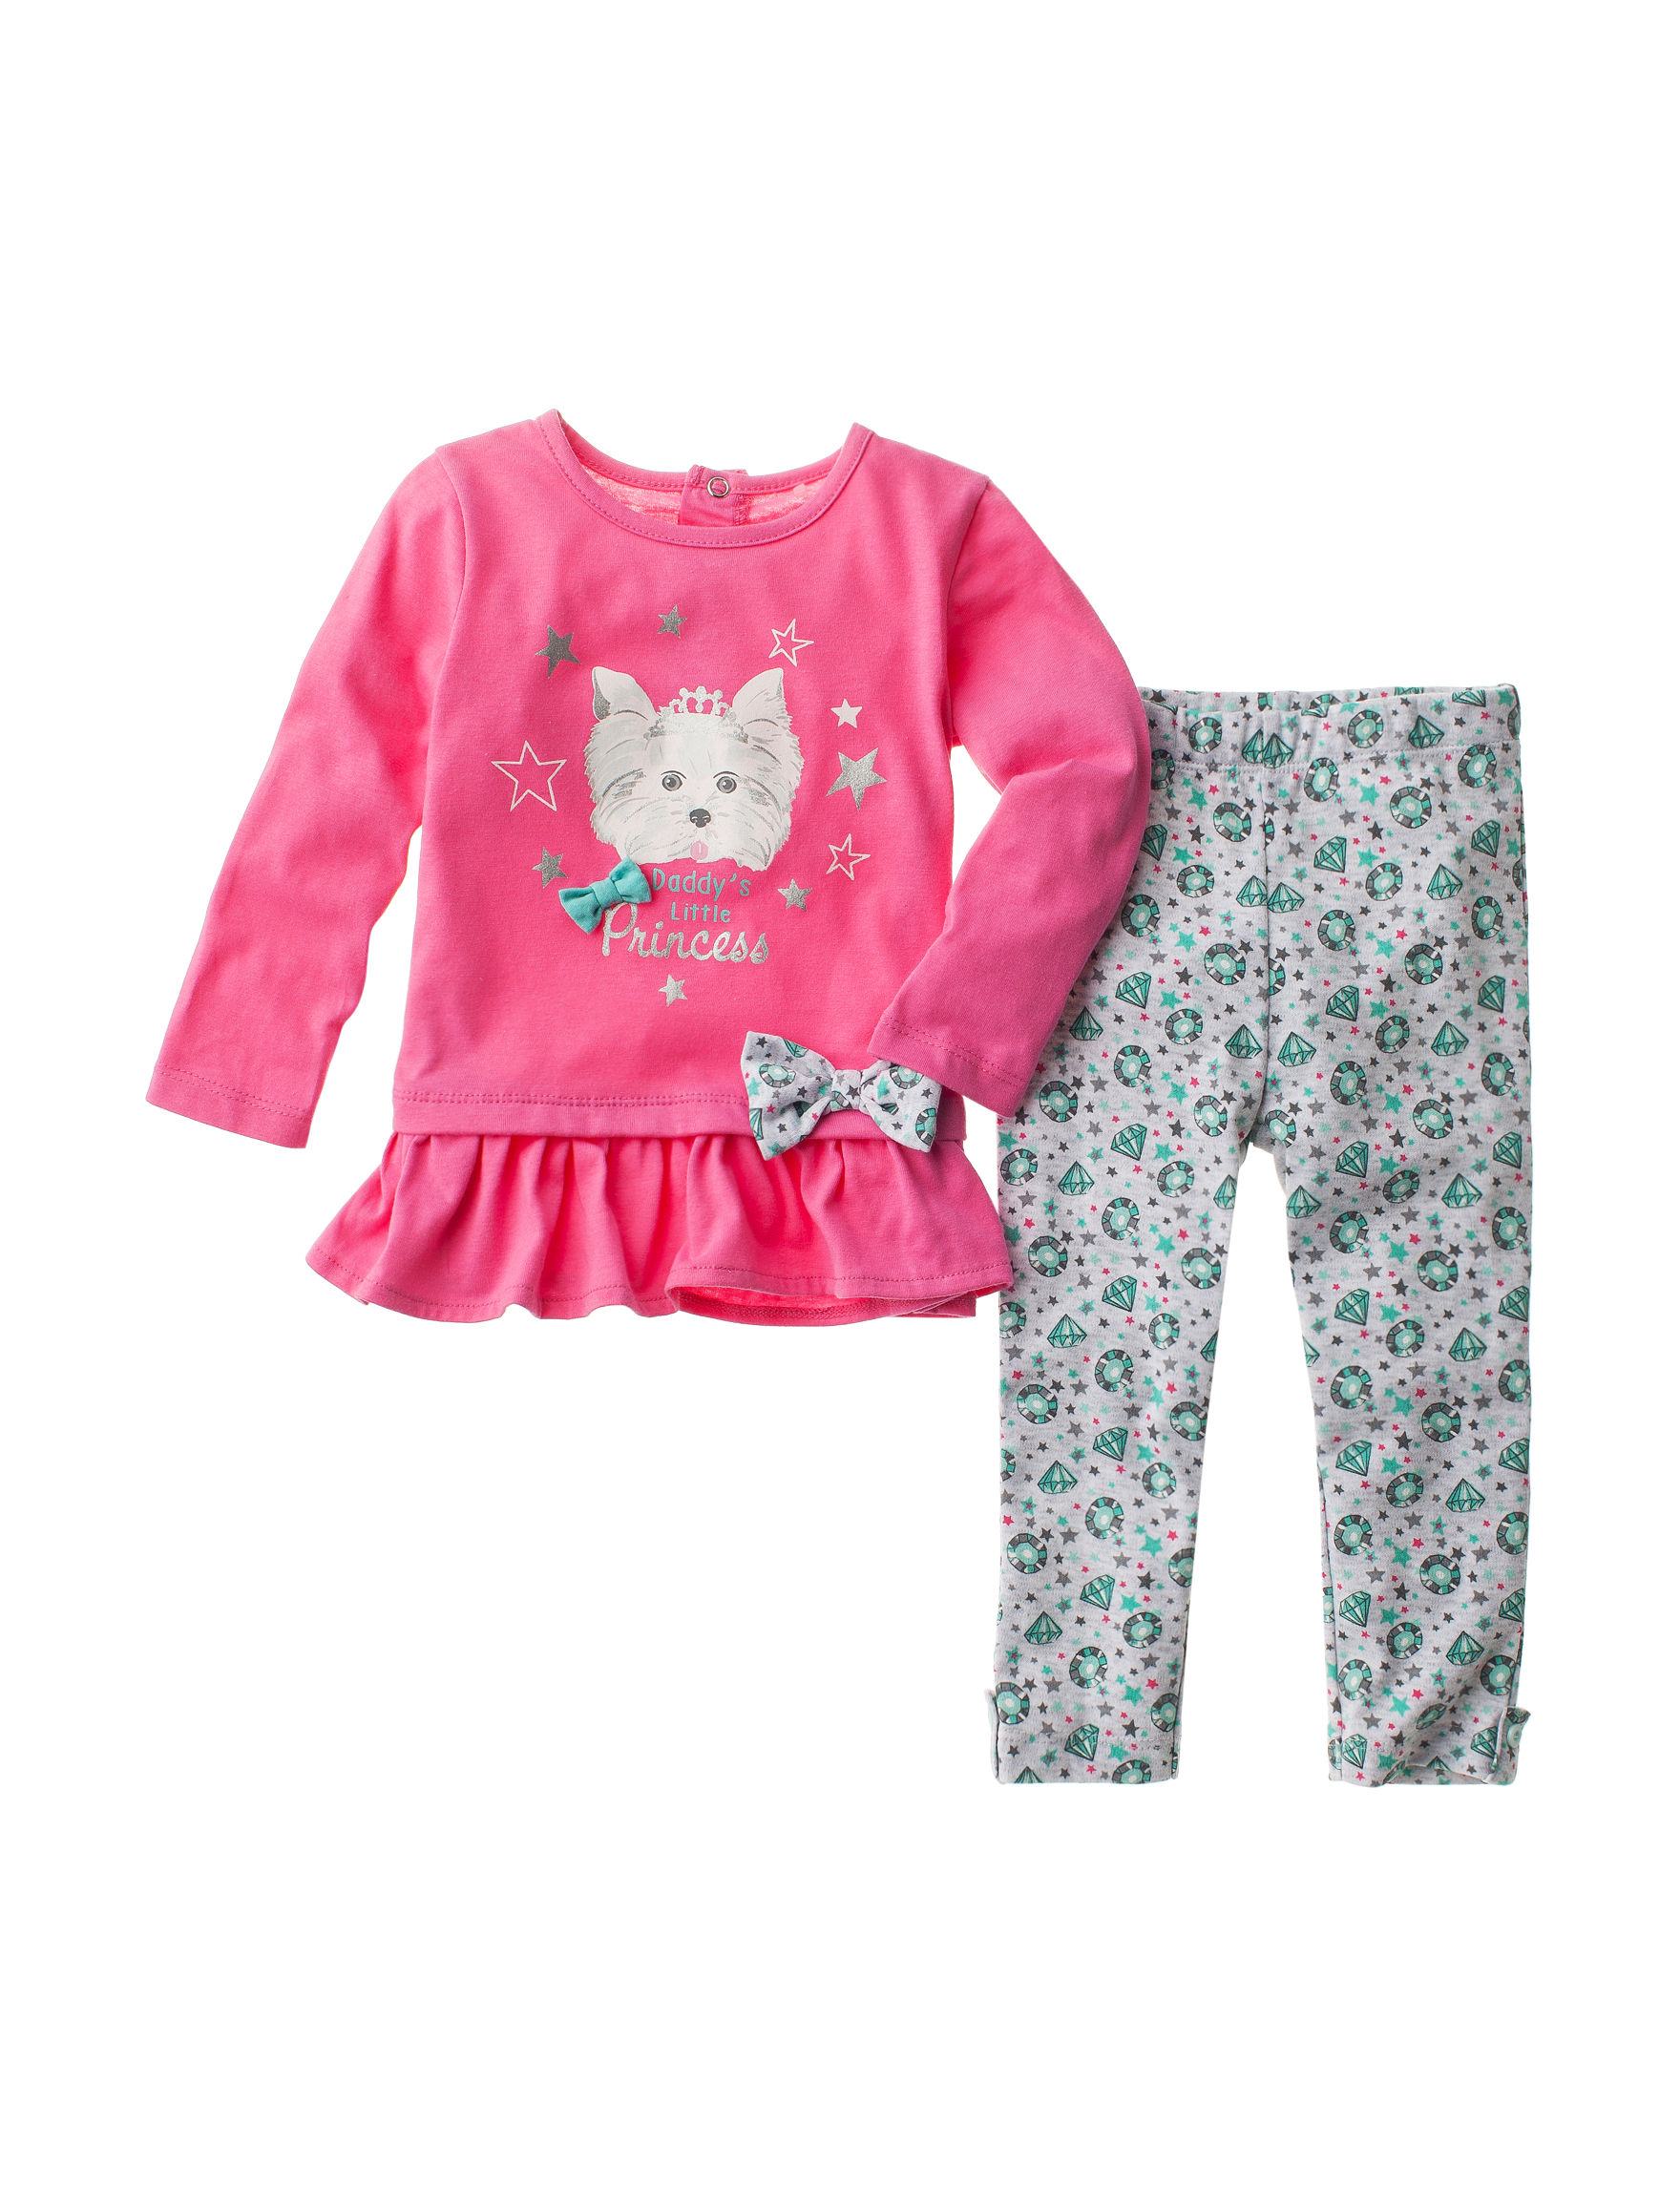 Baby Gear Pink